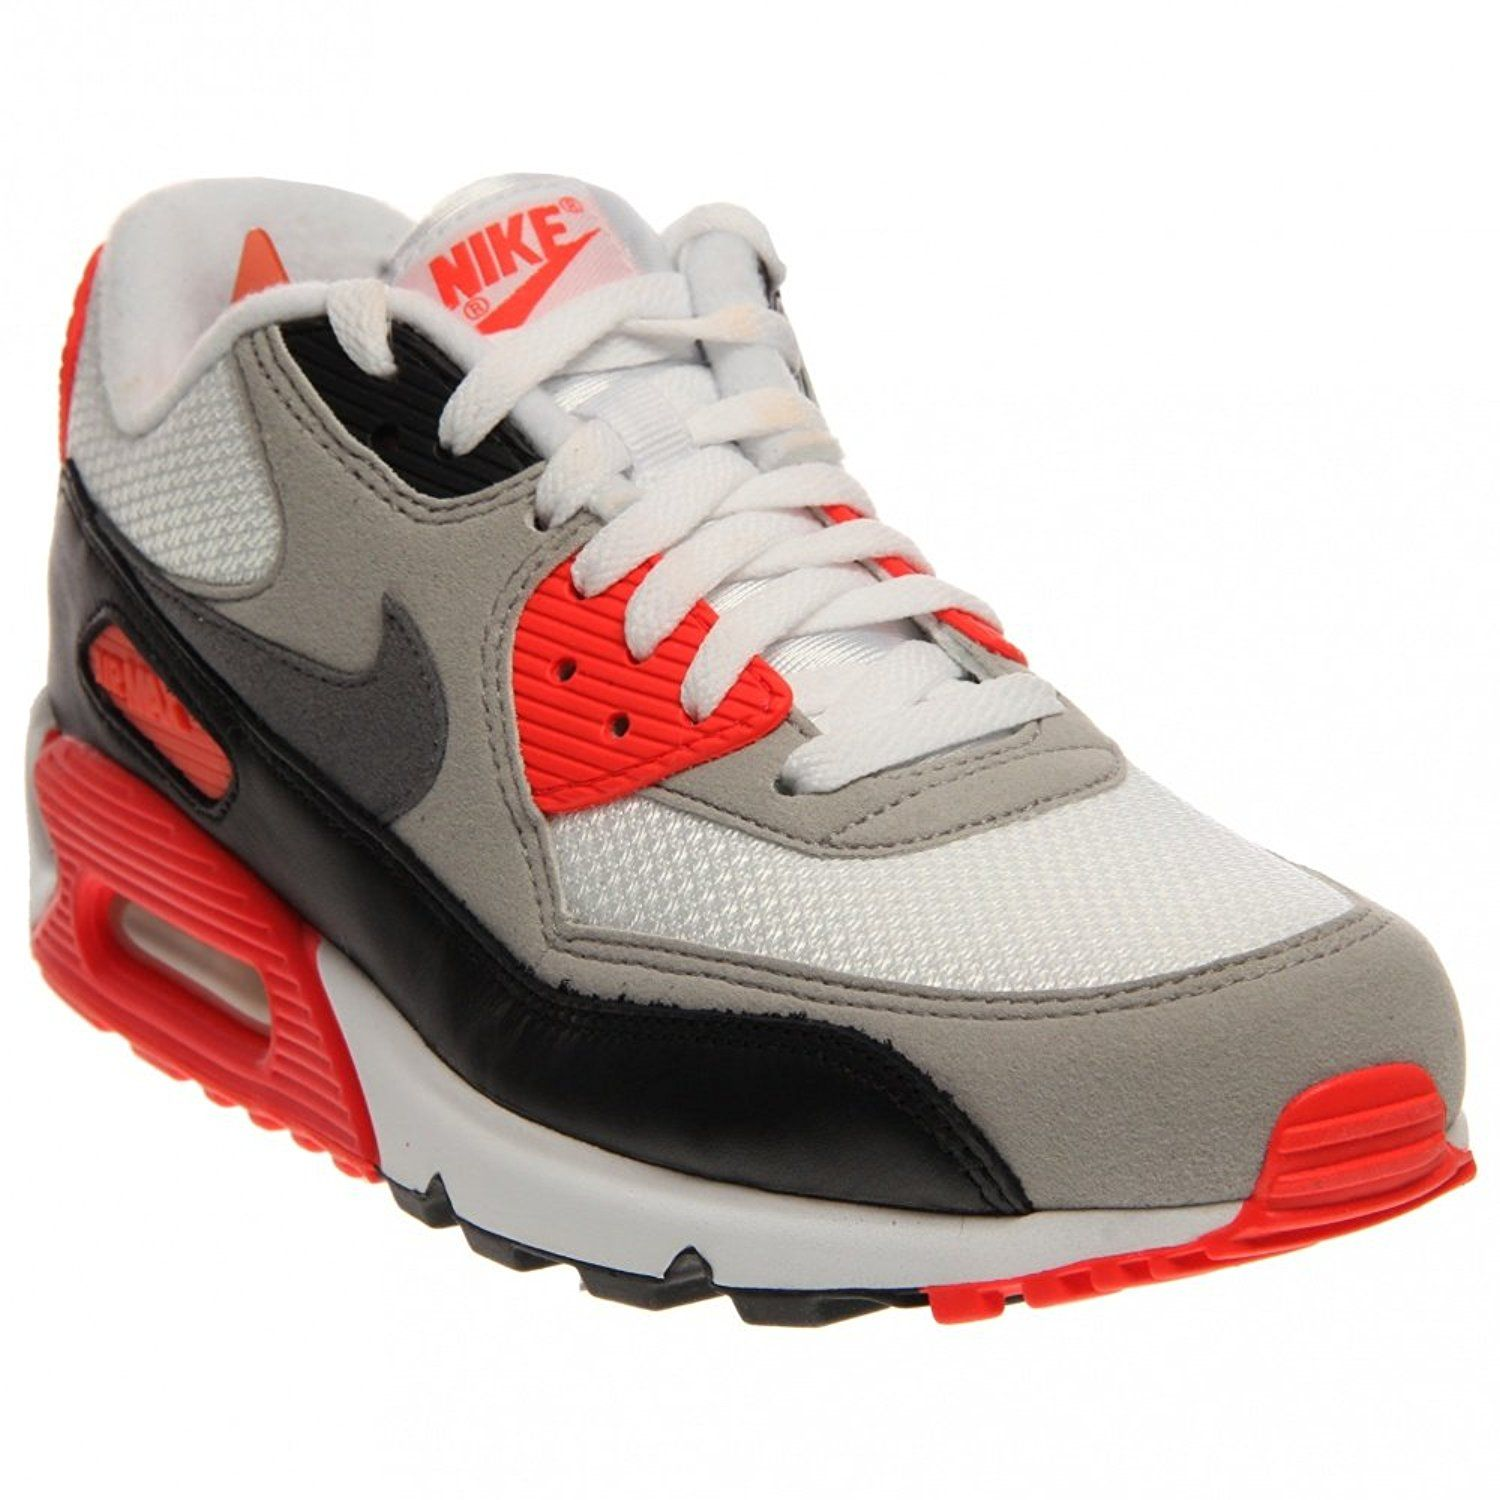 nike air max 90 OG mens trainers 725233 sneakers shoes: Amazon.co.uk